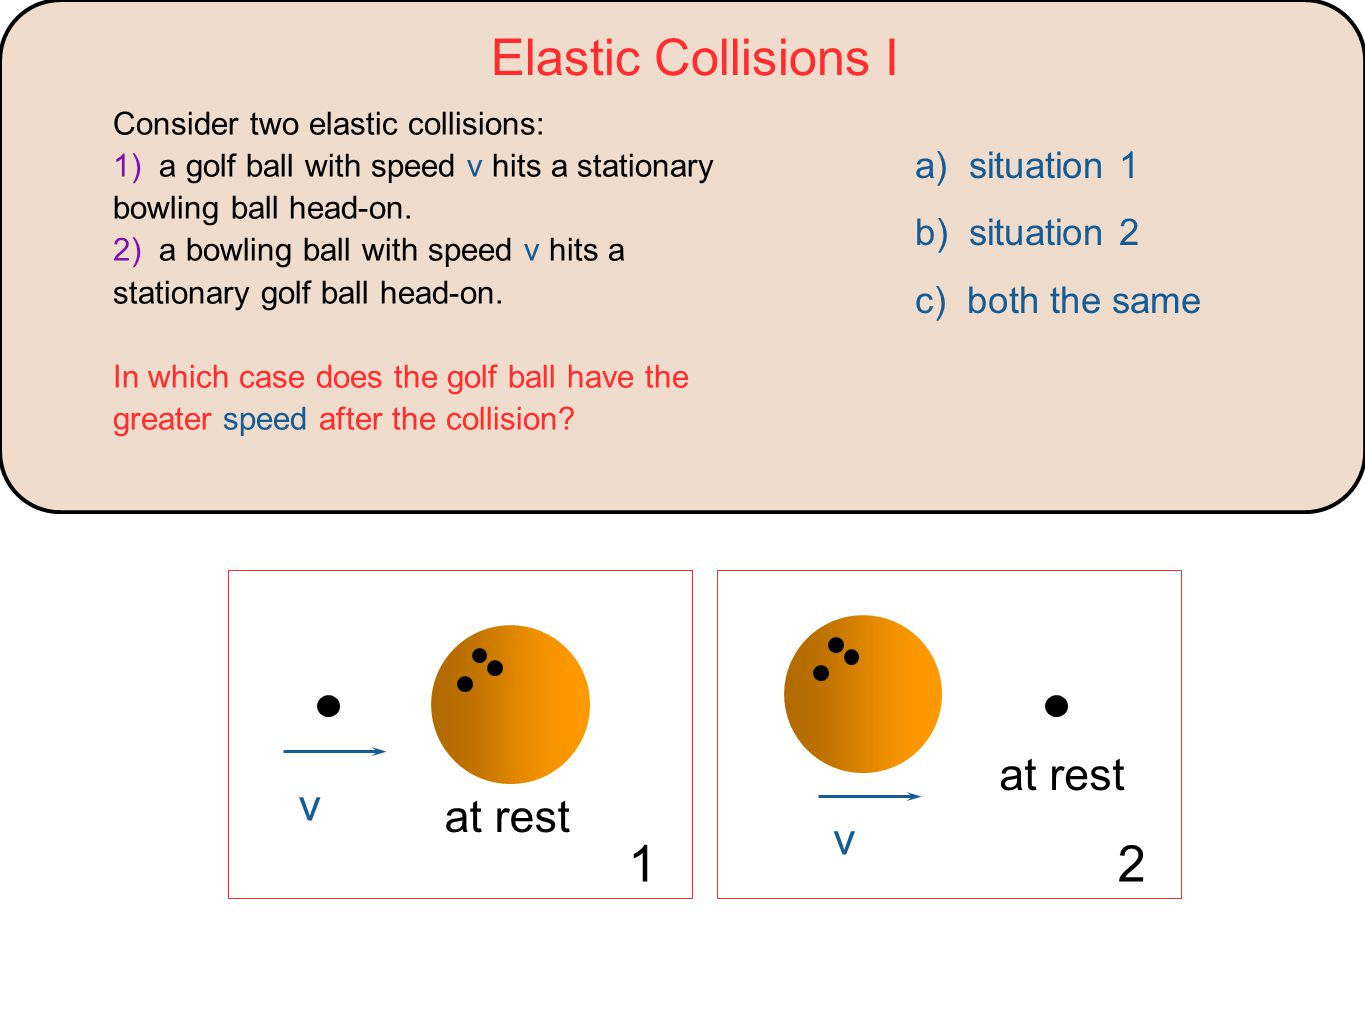 Elastic Collisions I 2 1 at rest v a) situation 1 b) situation 2